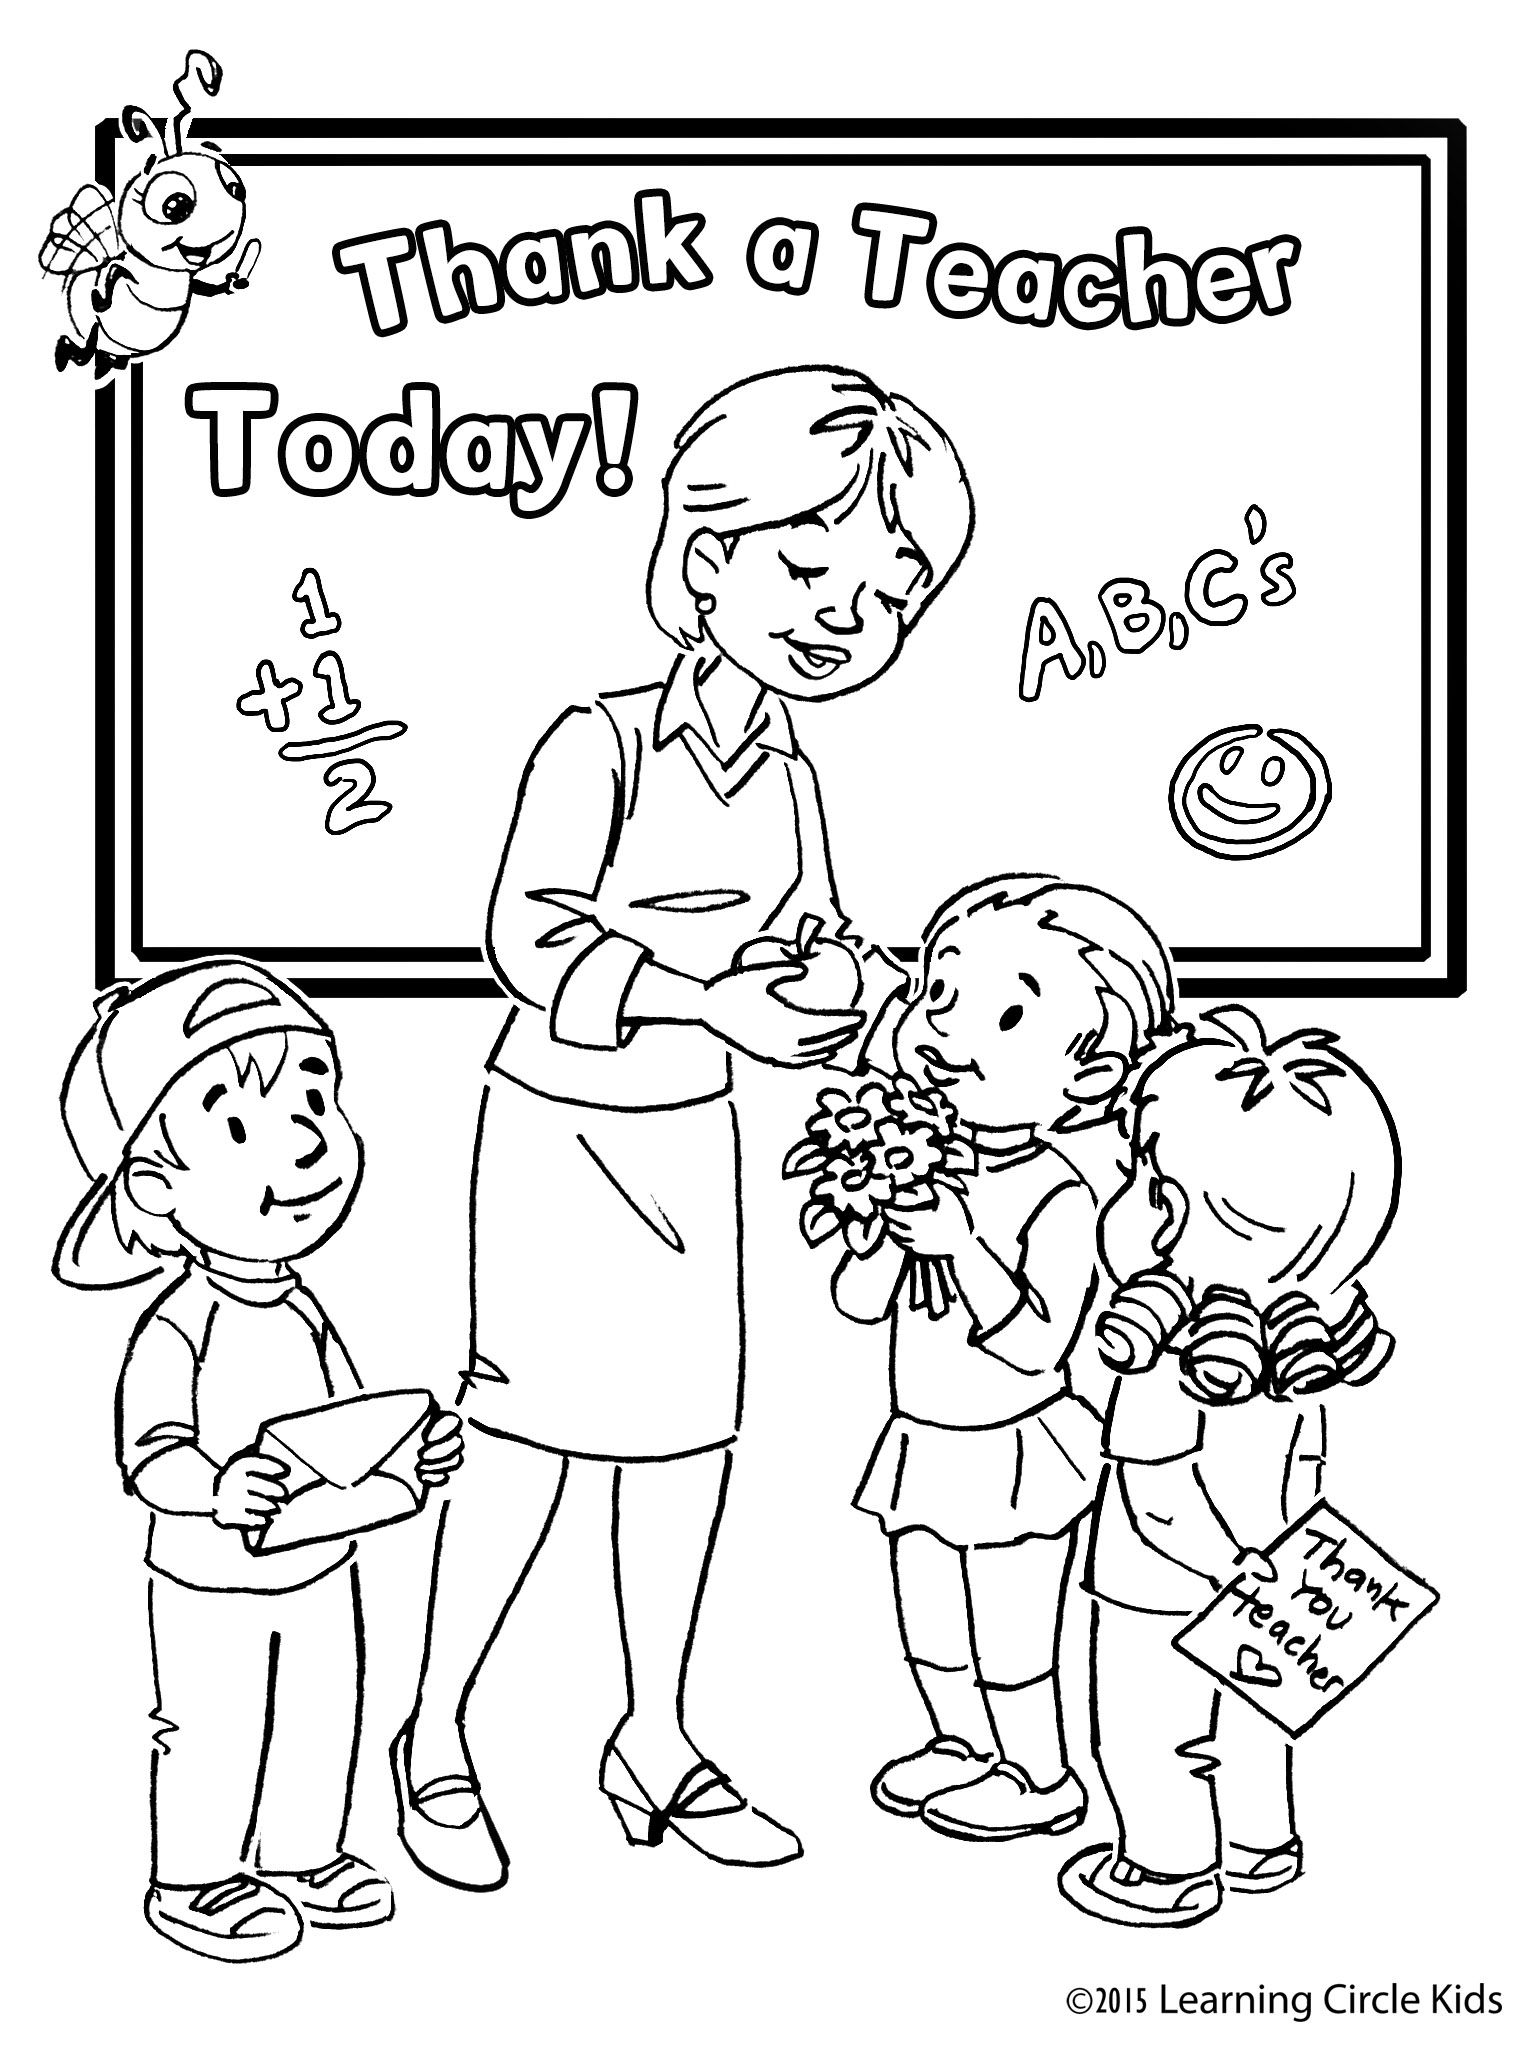 teachers coloring pages Pin by Reader Bee on Reader Bee Free Printable Coloring Pages  teachers coloring pages